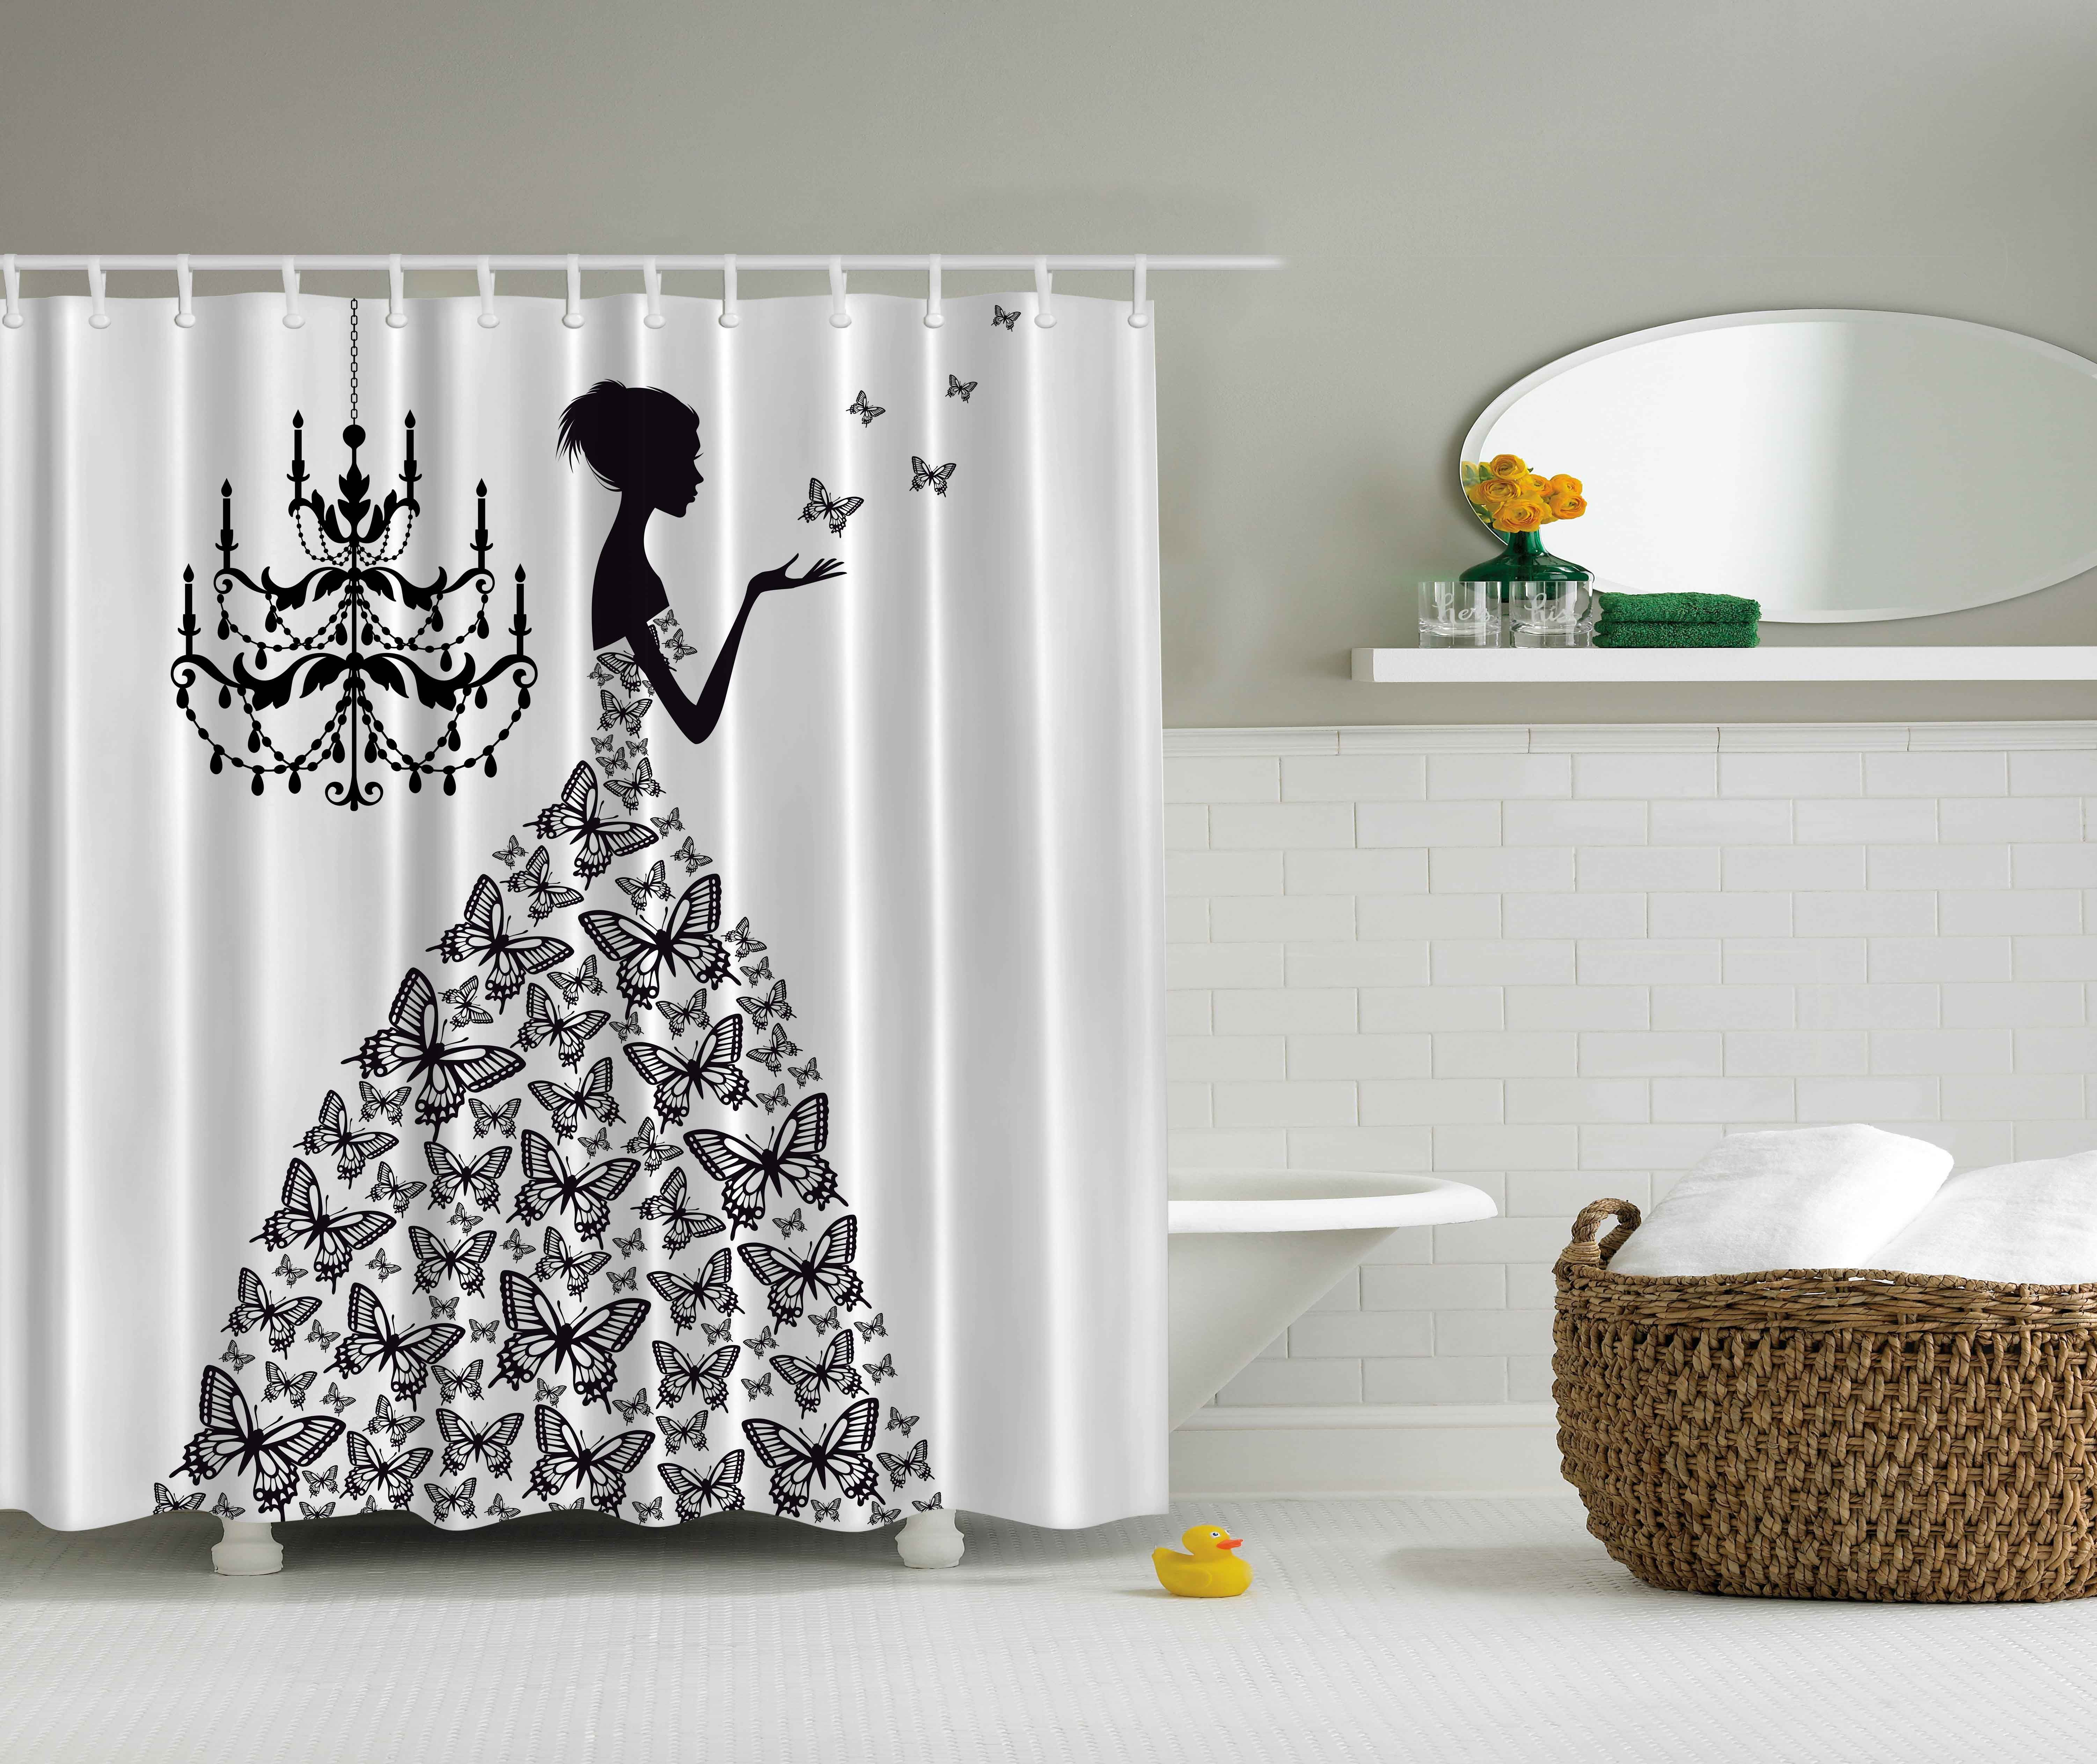 Ambesonne Fantasy Decor Collection, Classic Chandelier Woman In Butterfly  Dress Silhouette Artwork Print, Polyester · Long Shower CurtainsFabric ...